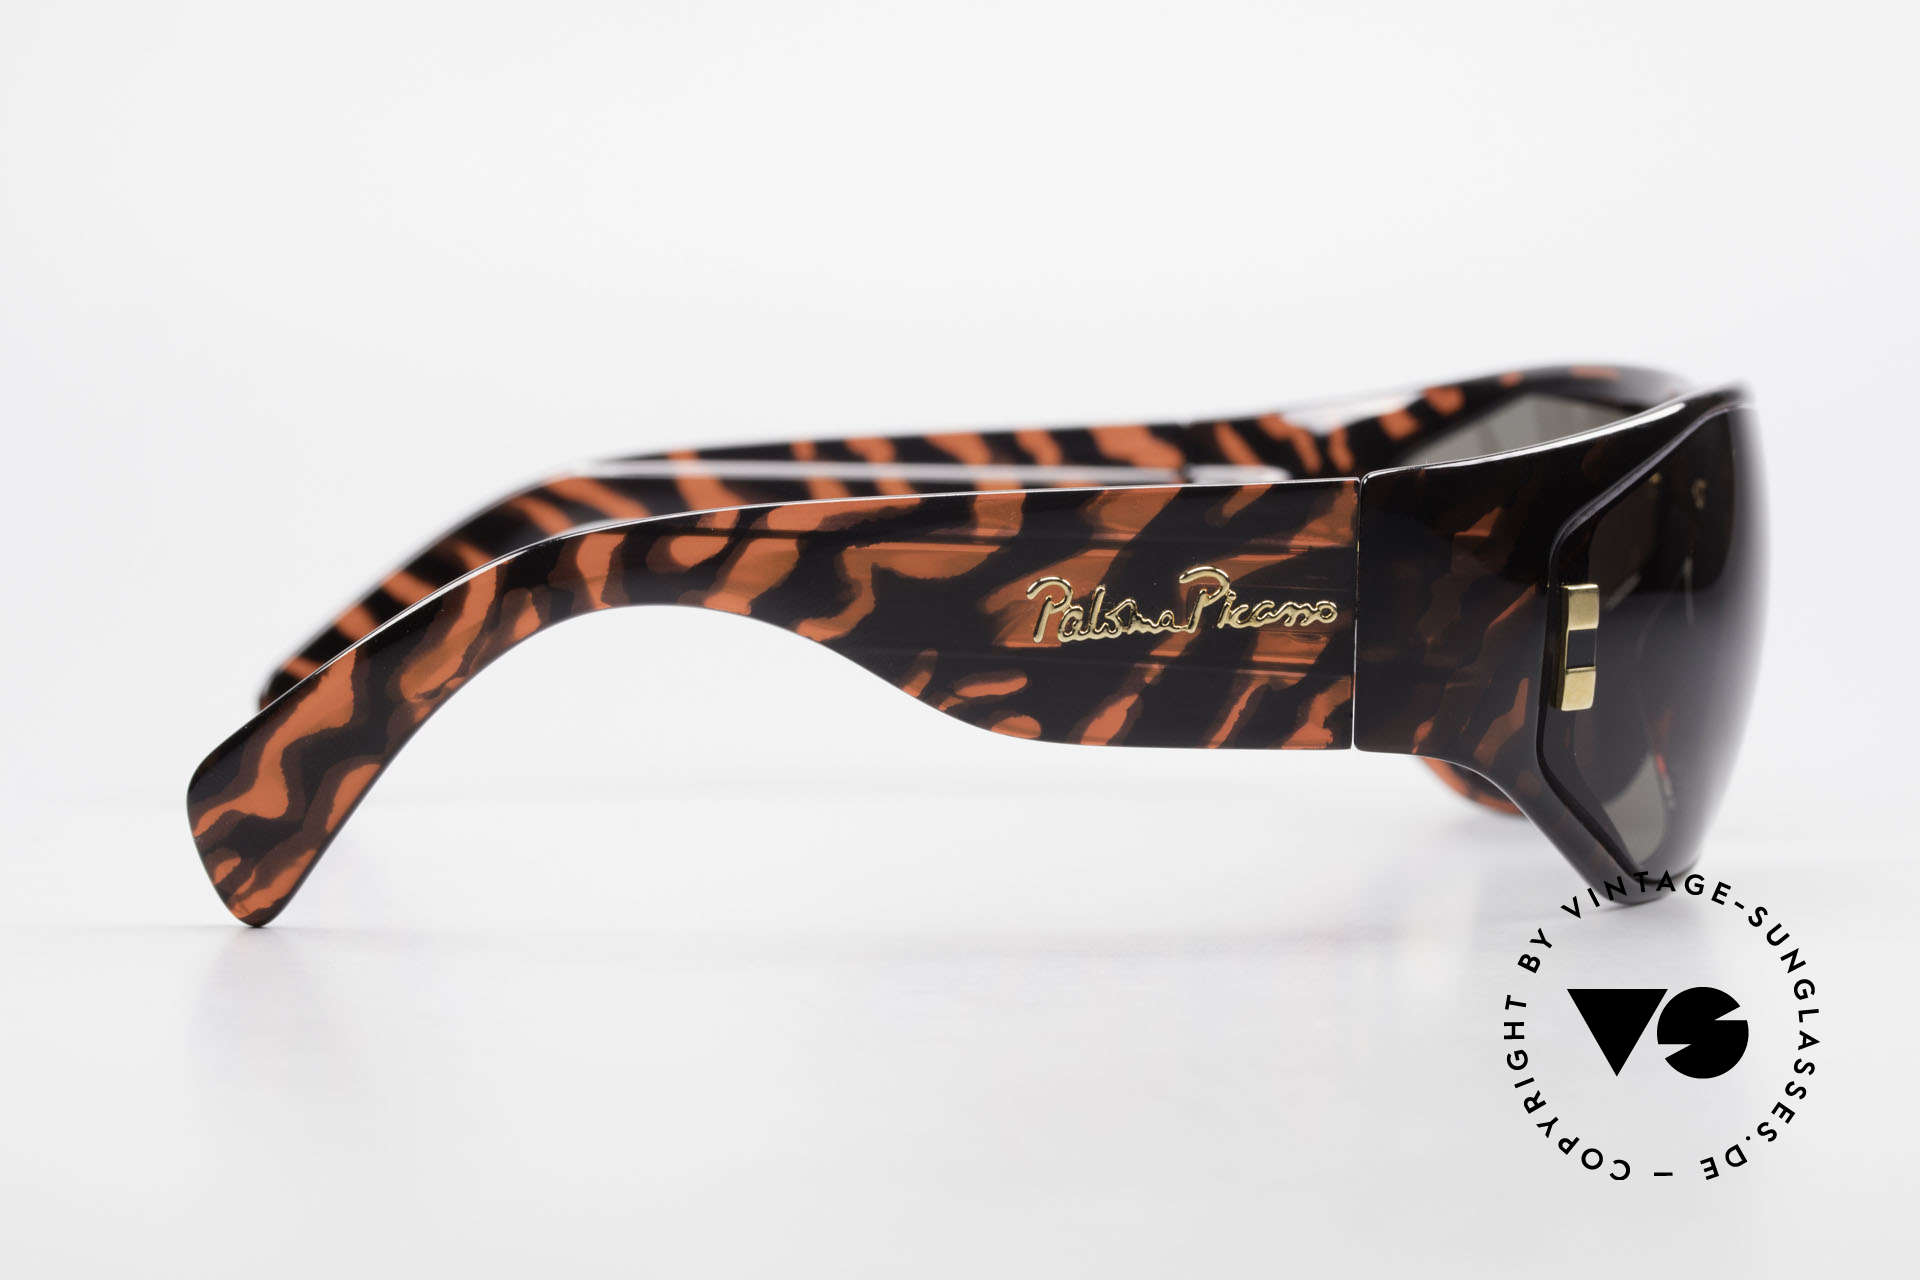 Paloma Picasso 3701 90's Wrap Sunglasses Ladies, of course never worn (as all our old 90's treasures), Made for Women